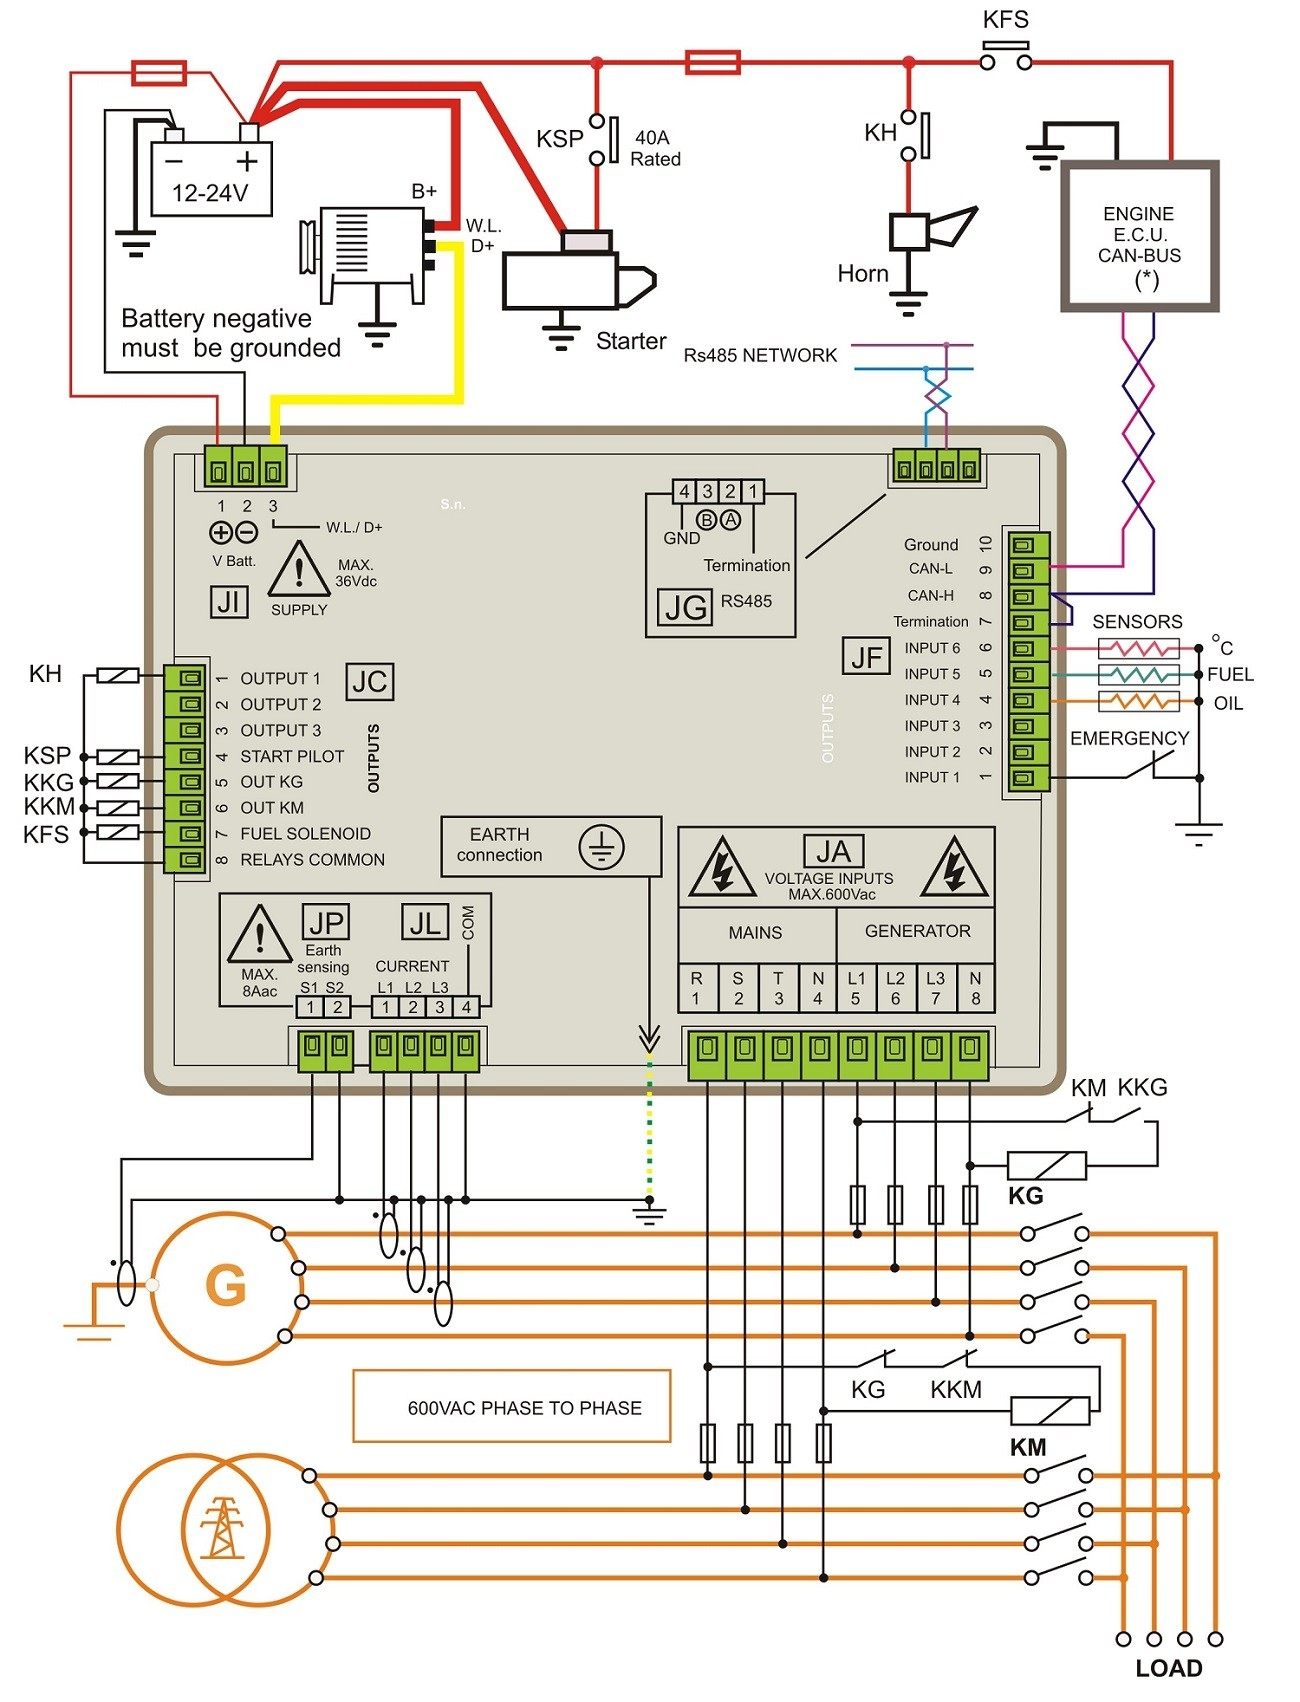 generator control panel wiring diagram Collection-Generator Amf Wiring Diagram Save Generator Control Panel Manufacturers – Genset Controller 11-s